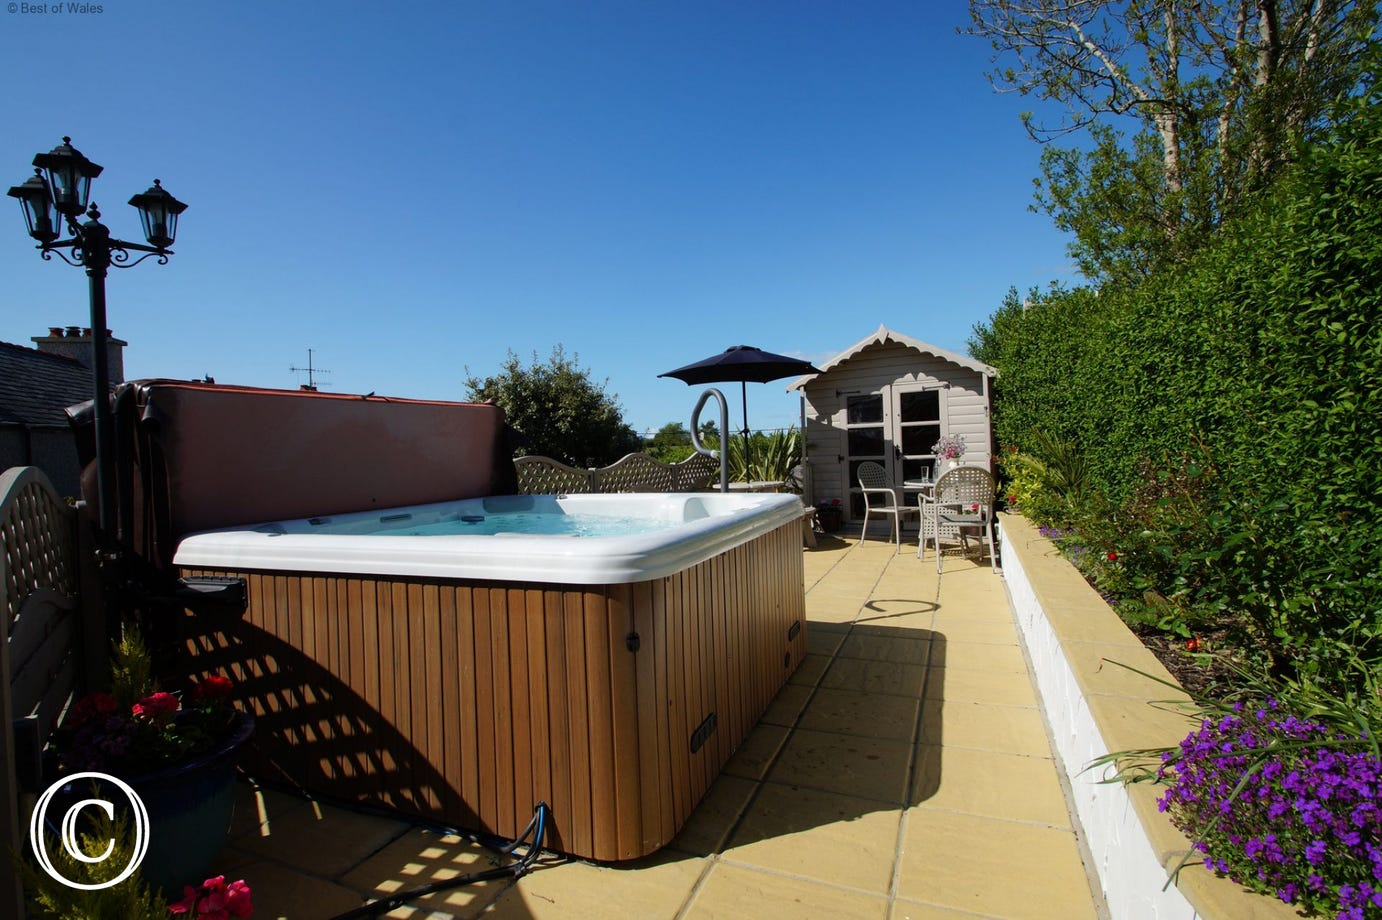 Enclosed garden & large hot tub